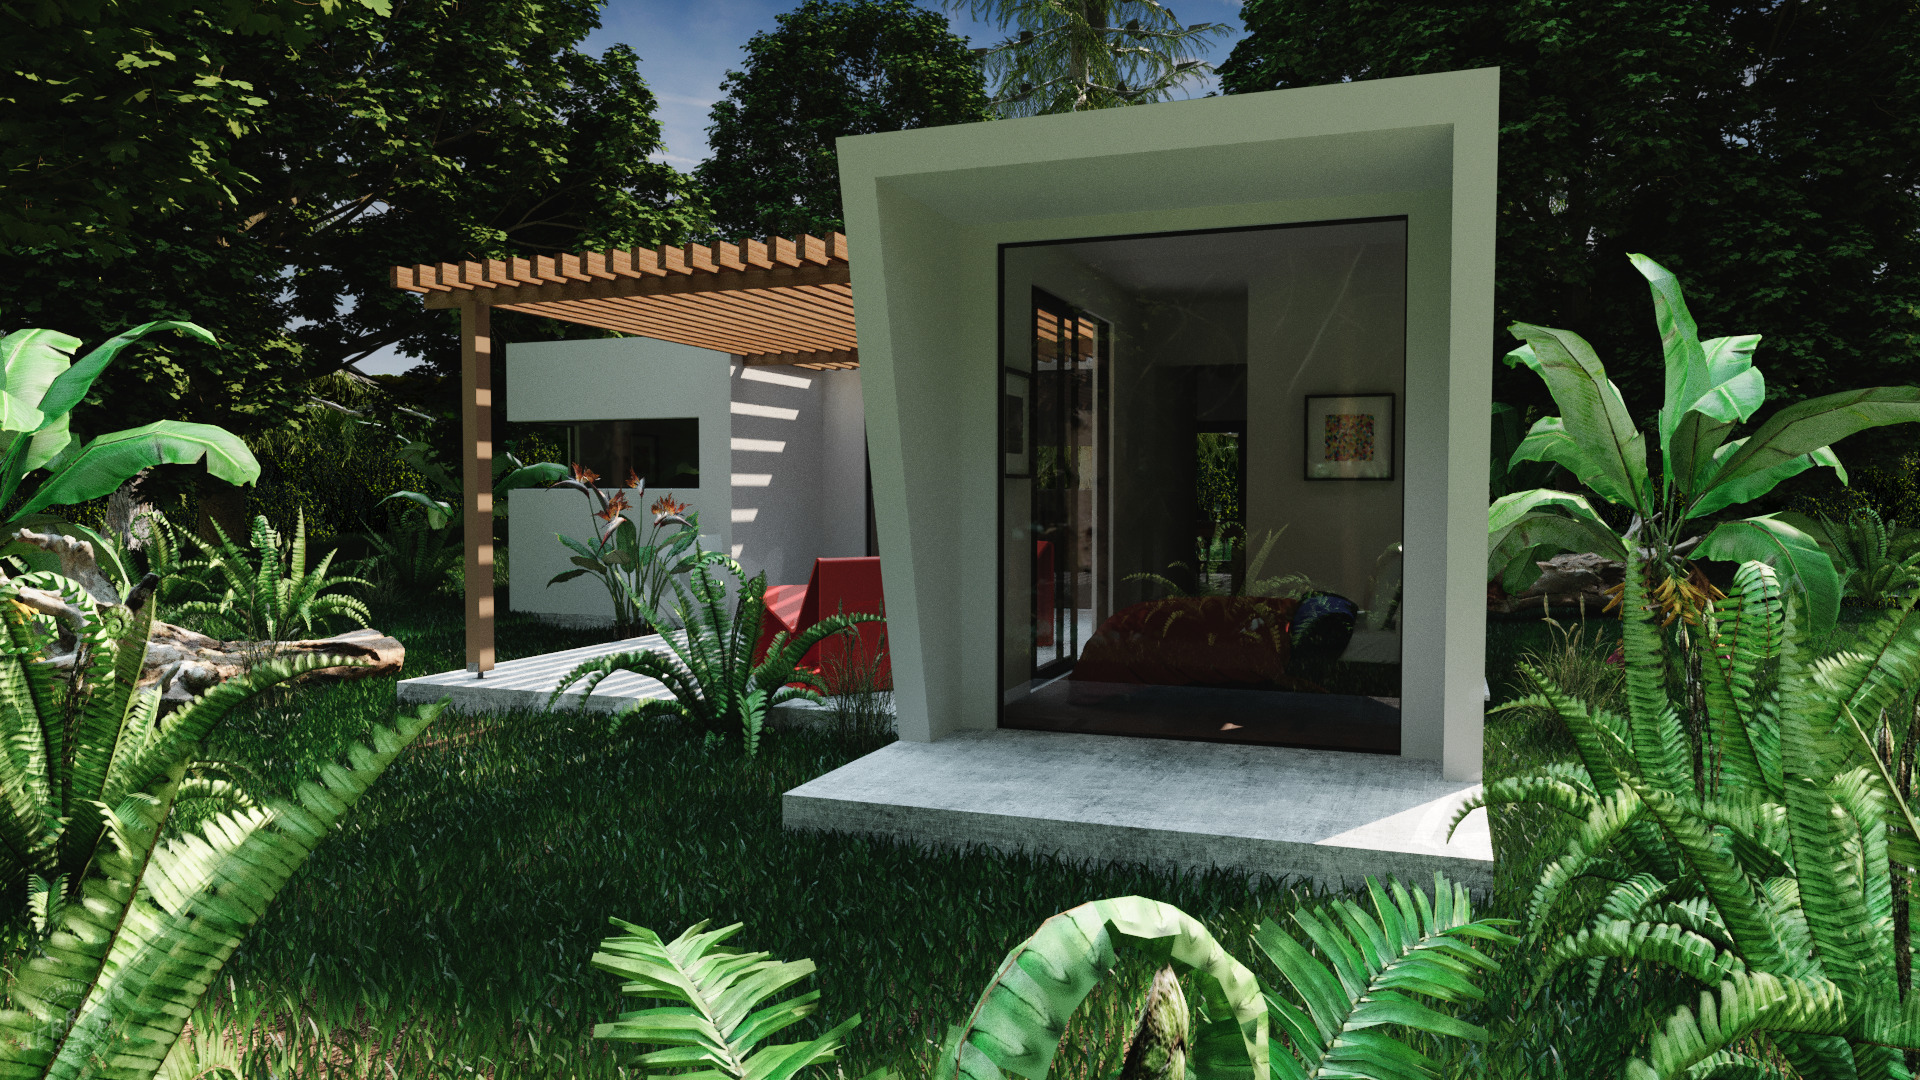 'Container House - container, house - bengaminjerrems | ello